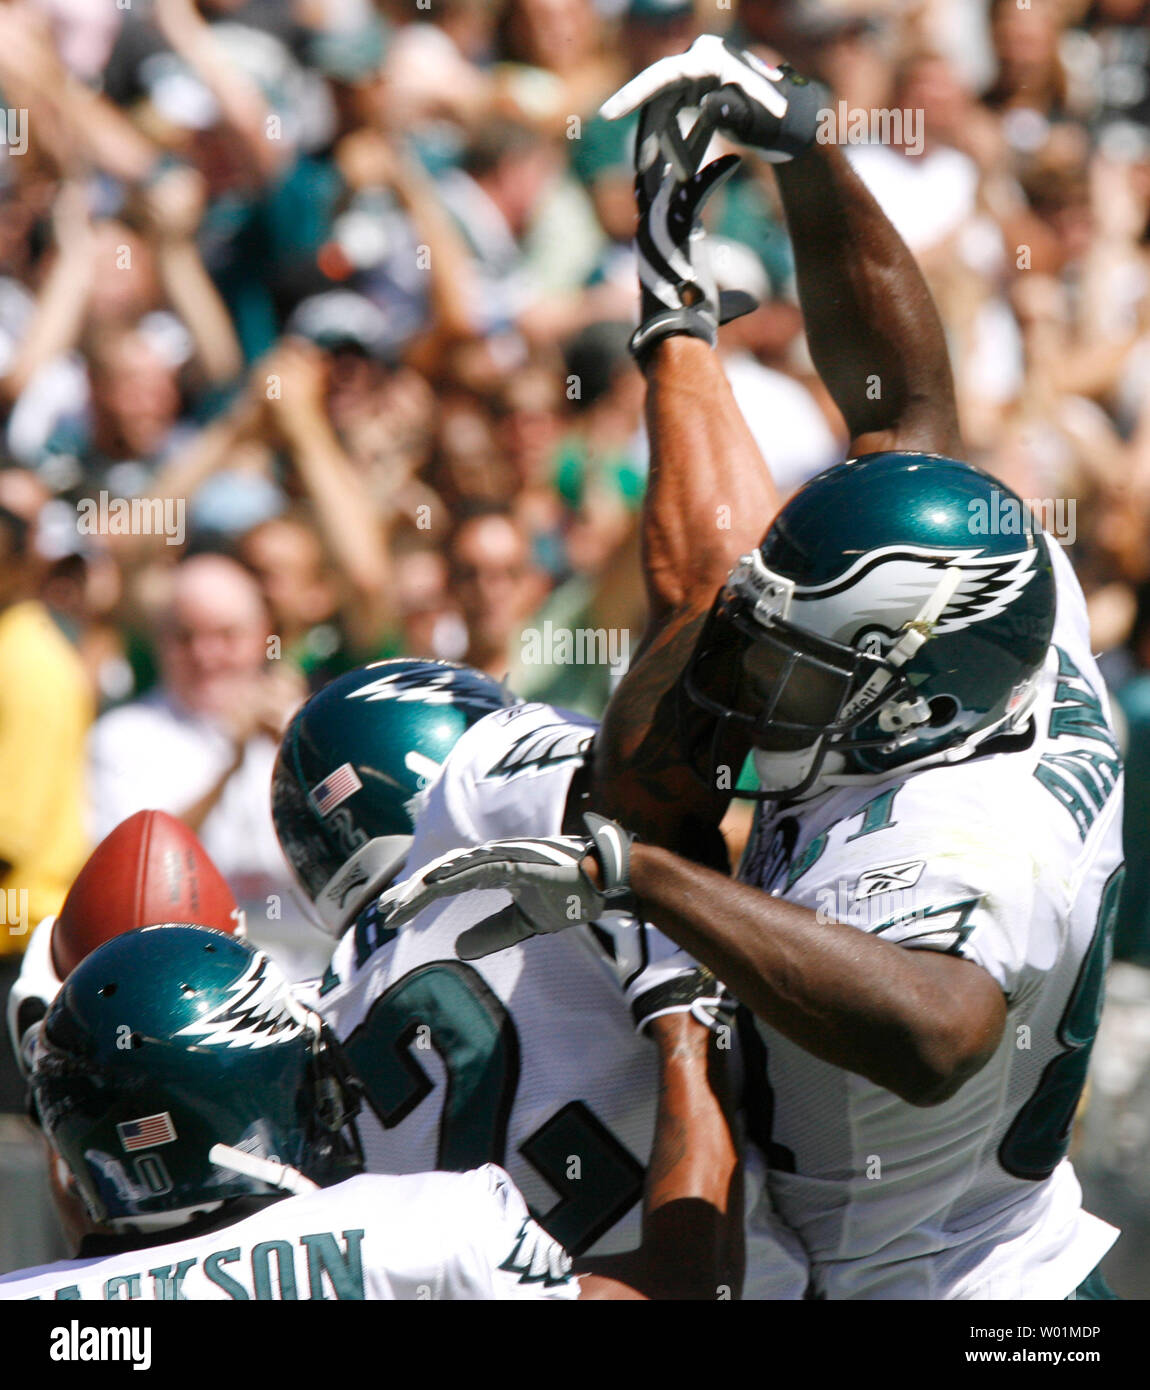 Philadelphia Eagles  L.J. Smith goes for a high 5 with teammate (26) during first quarter play in Philadelphia at Lincoln Financial Field September 7, 2008.   (UPI Photo/John Anderson) - Stock Image